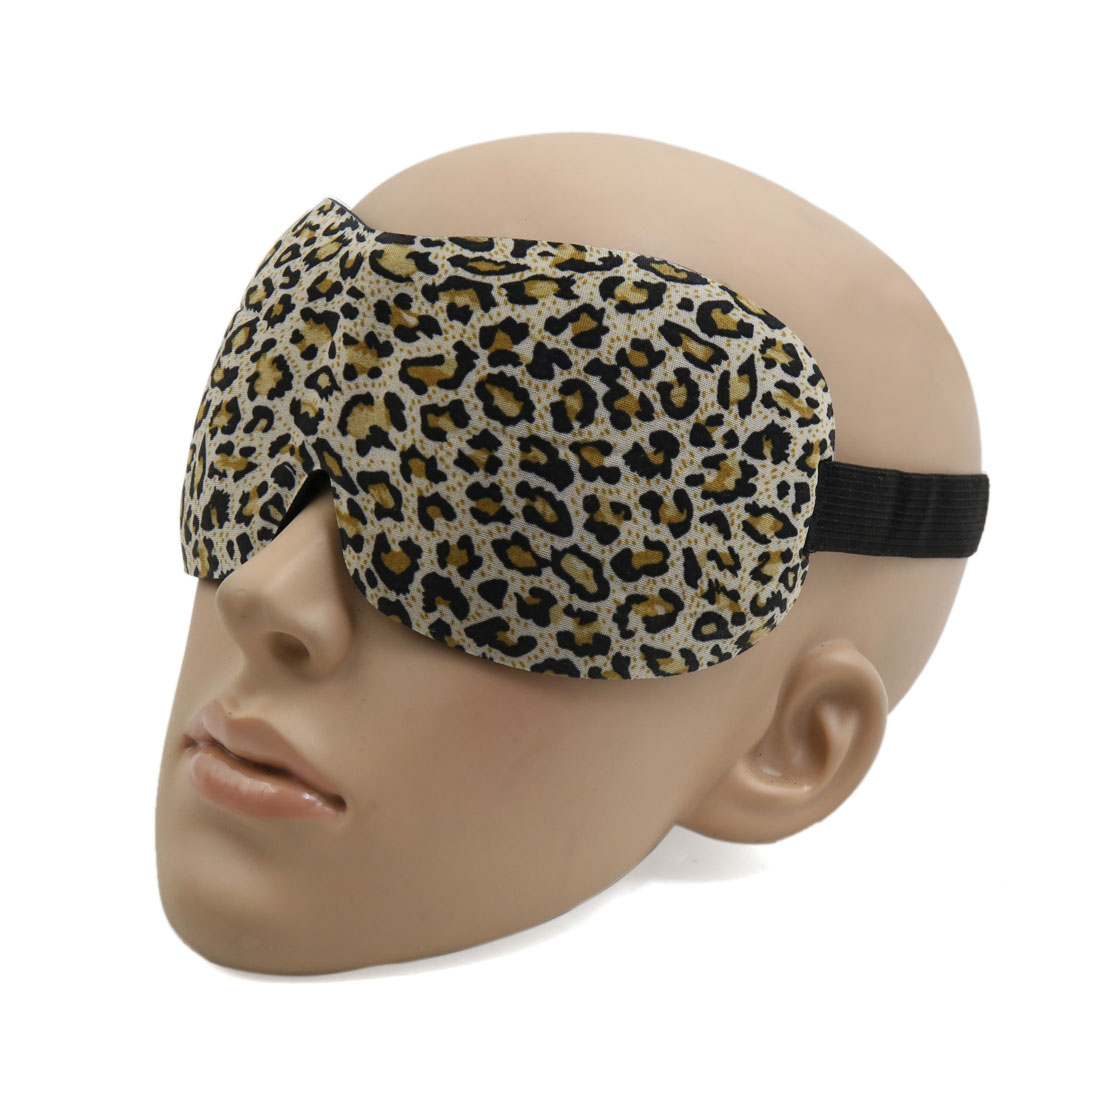 Travel 3D Eye Sleep Mask Padded Shade Cover Rest Relax Blindfold Leopard Print